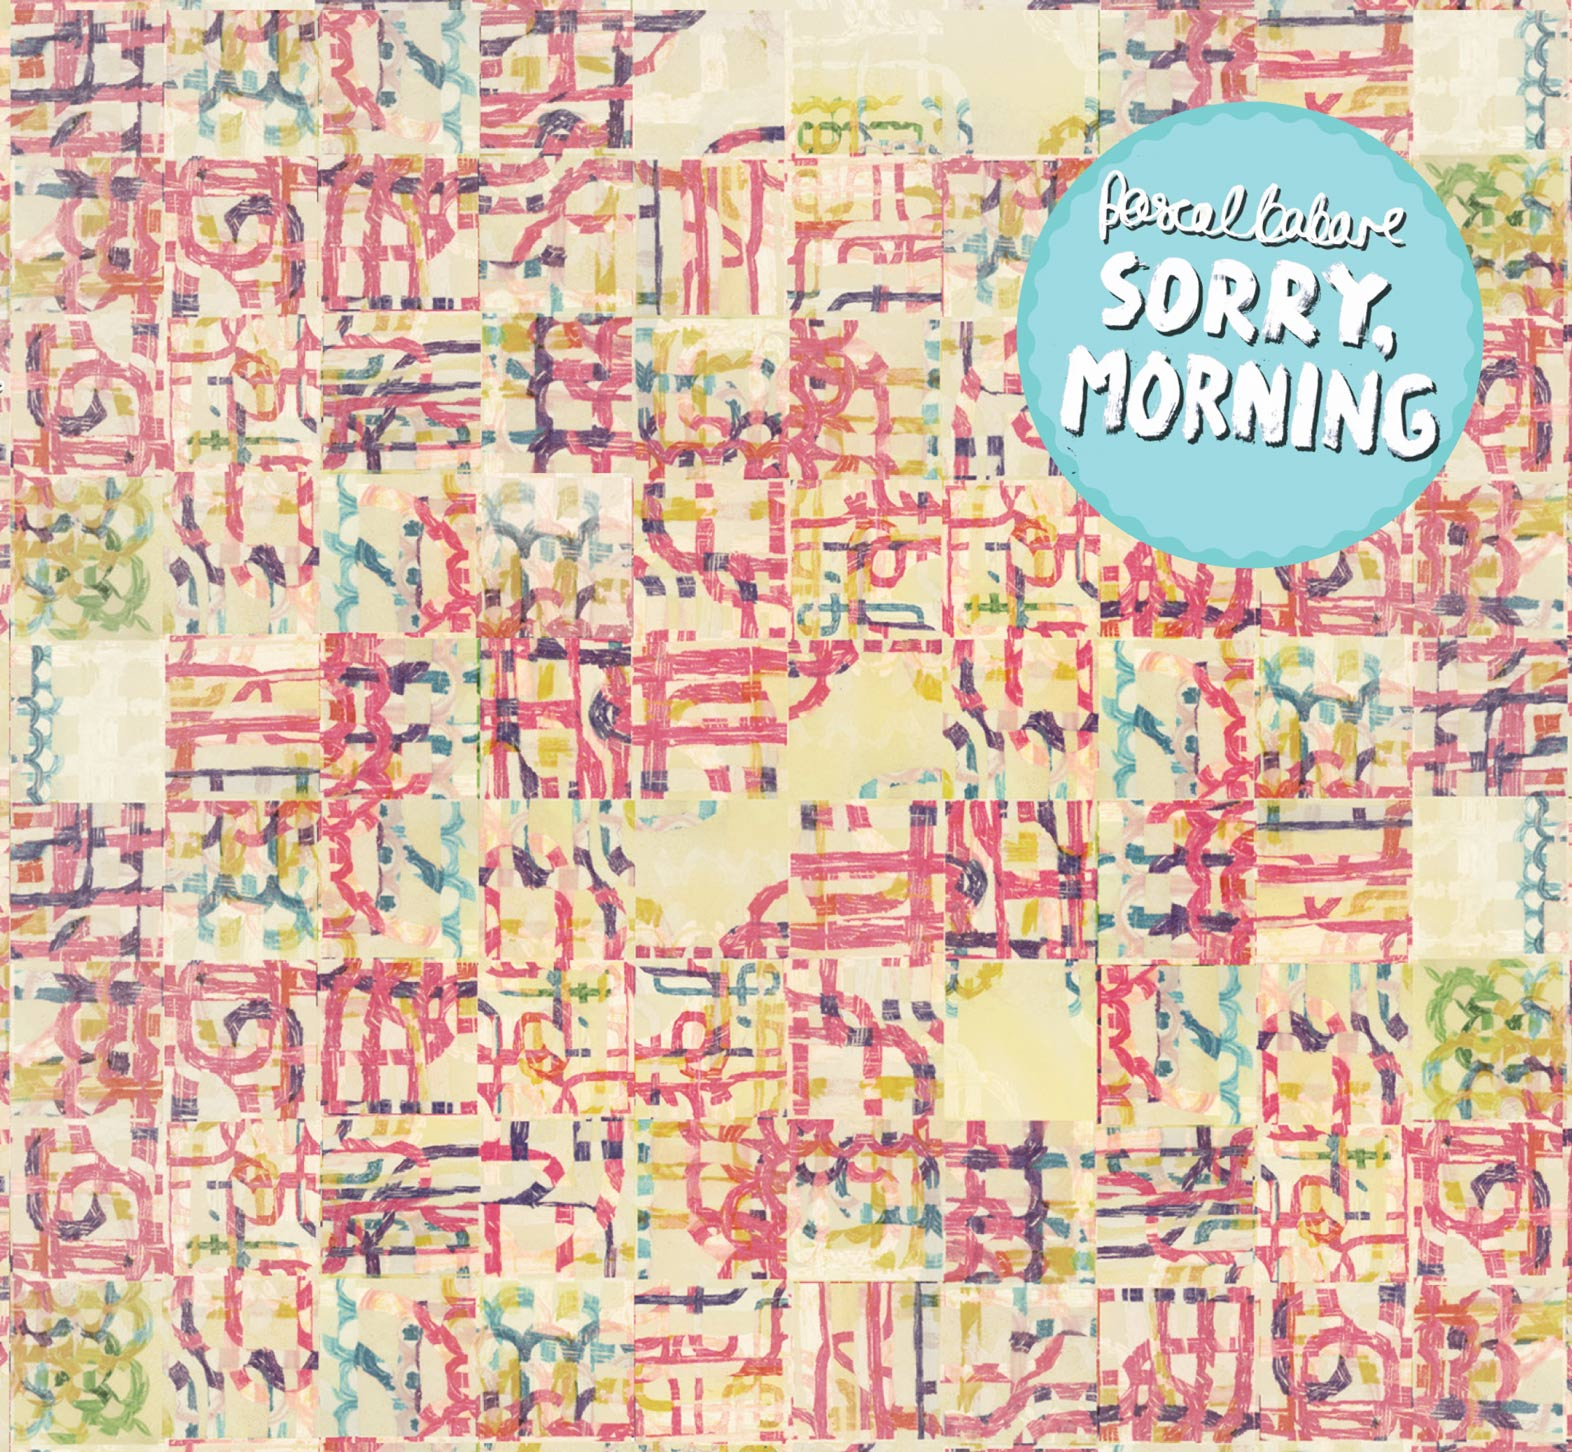 """My second solo LP """"Sorry, Morning"""", quietly released in 2013,was recorded between Germany and London.  It was recored a little better, and lyrically it's a bit more cold.But the songs are mostly about me. In fact they're all about me, even the ones where I say it's about someone else. Except the breakup song. That's definitely not about me. But it also kind of is. Or is it? I guess you'll never know. -Pascal Babare, 2016  You can get the digital version  here . I also have some lovely cardboard gatefold CDs, which come with a big fold-out poster of the artwork and lyrics inside. Get in touch if you'd like to buy one."""